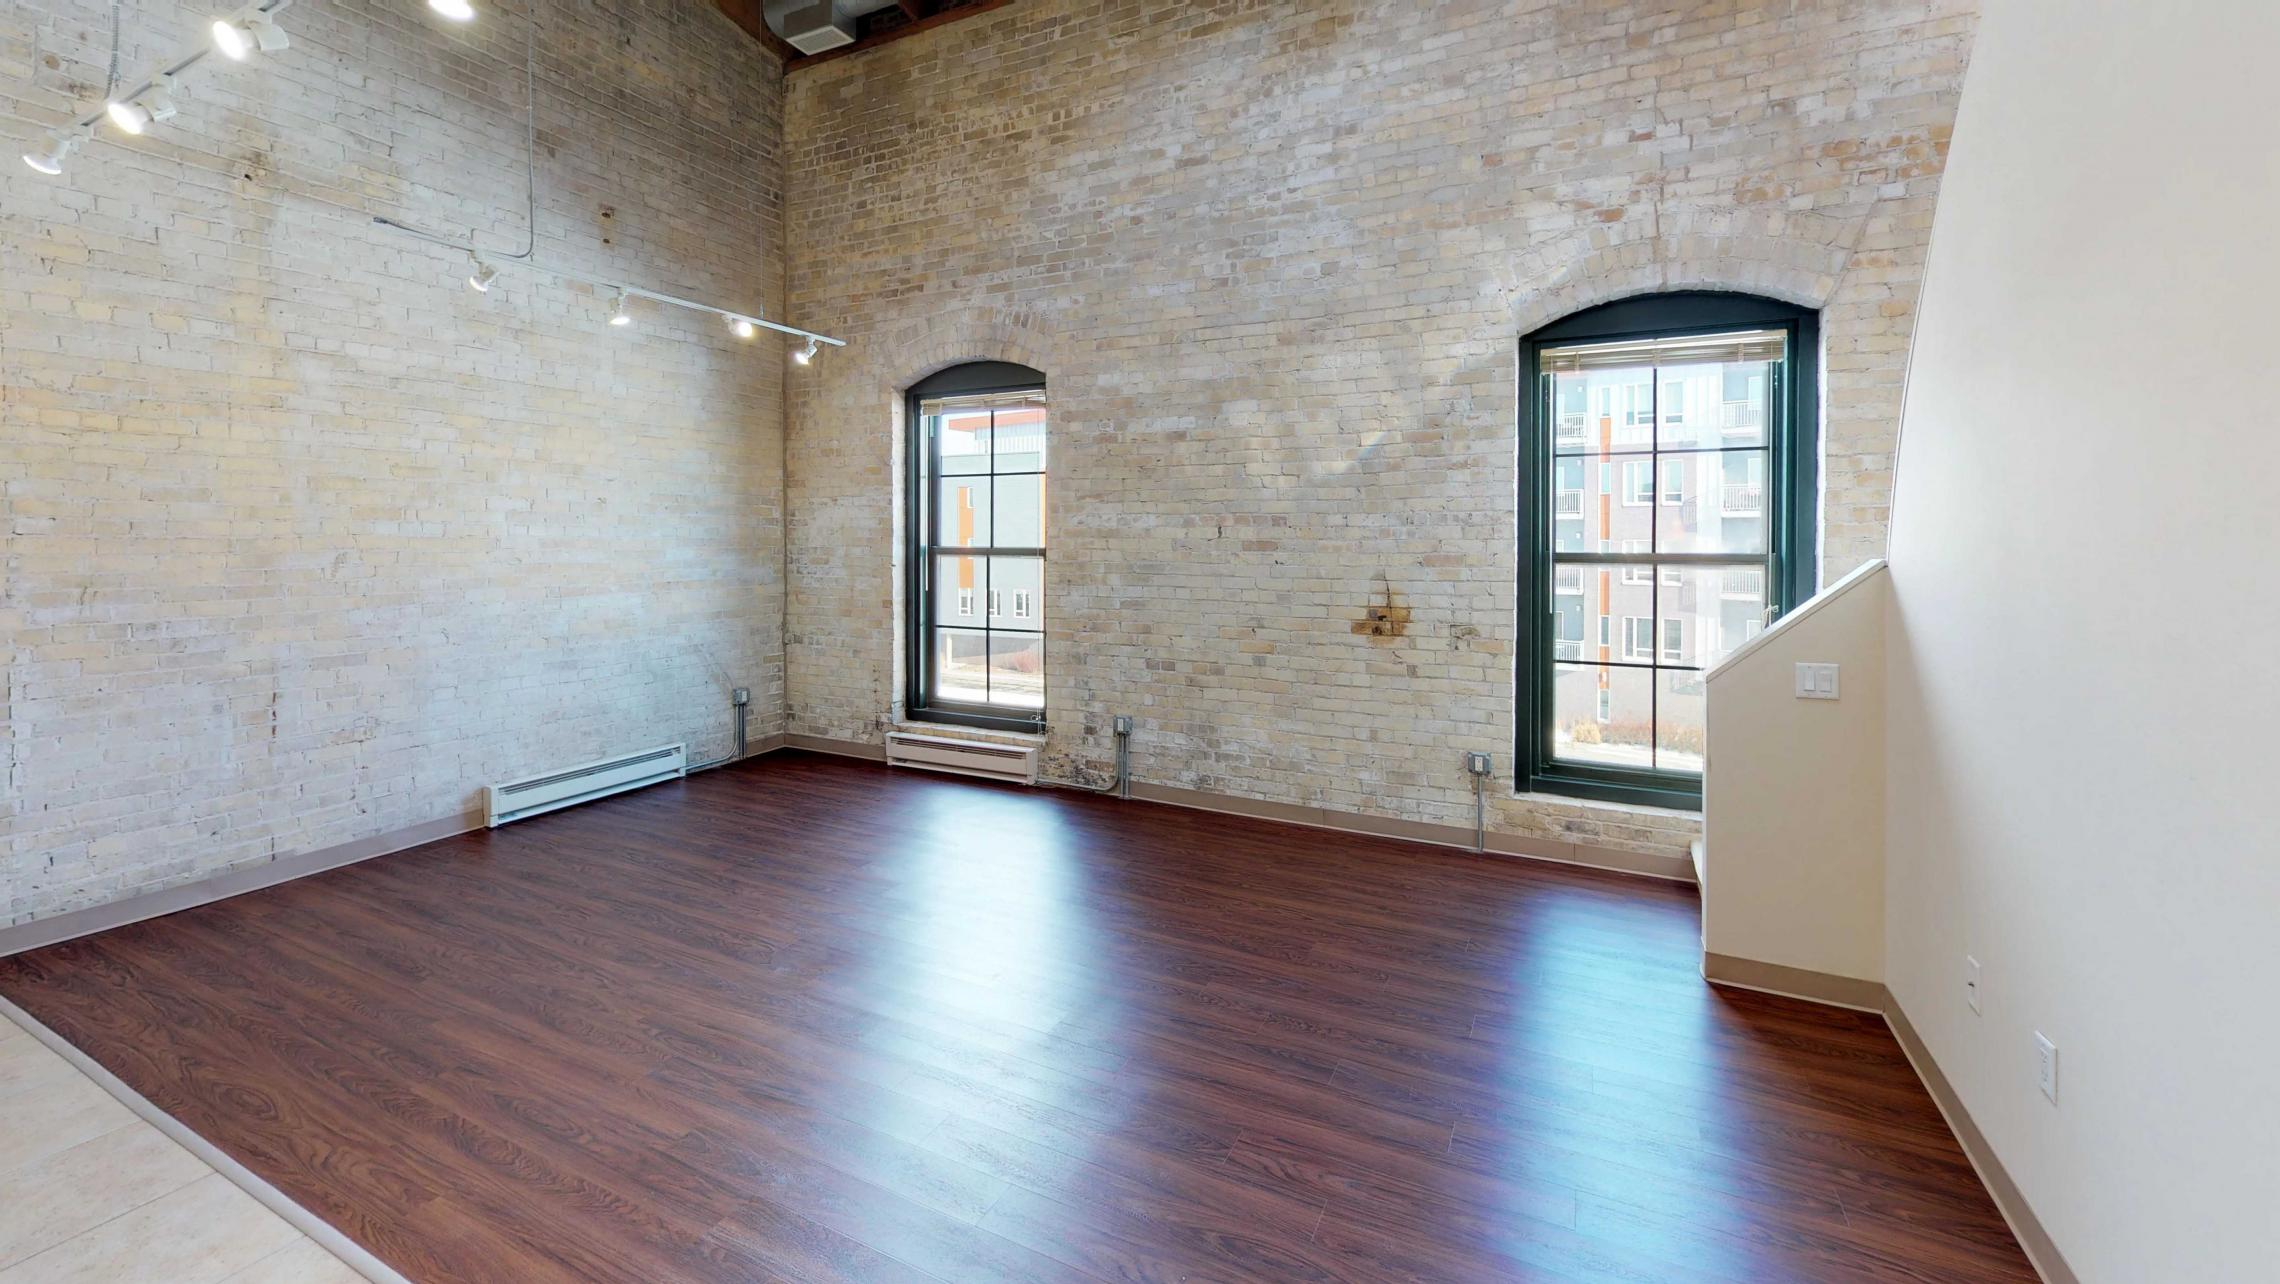 Tobacco-Lofts-Apartment-E307-Historic-Downtown-Lofted-Two-Bedroom-Madison-Exposed-Brick-Design-Beams-Dining